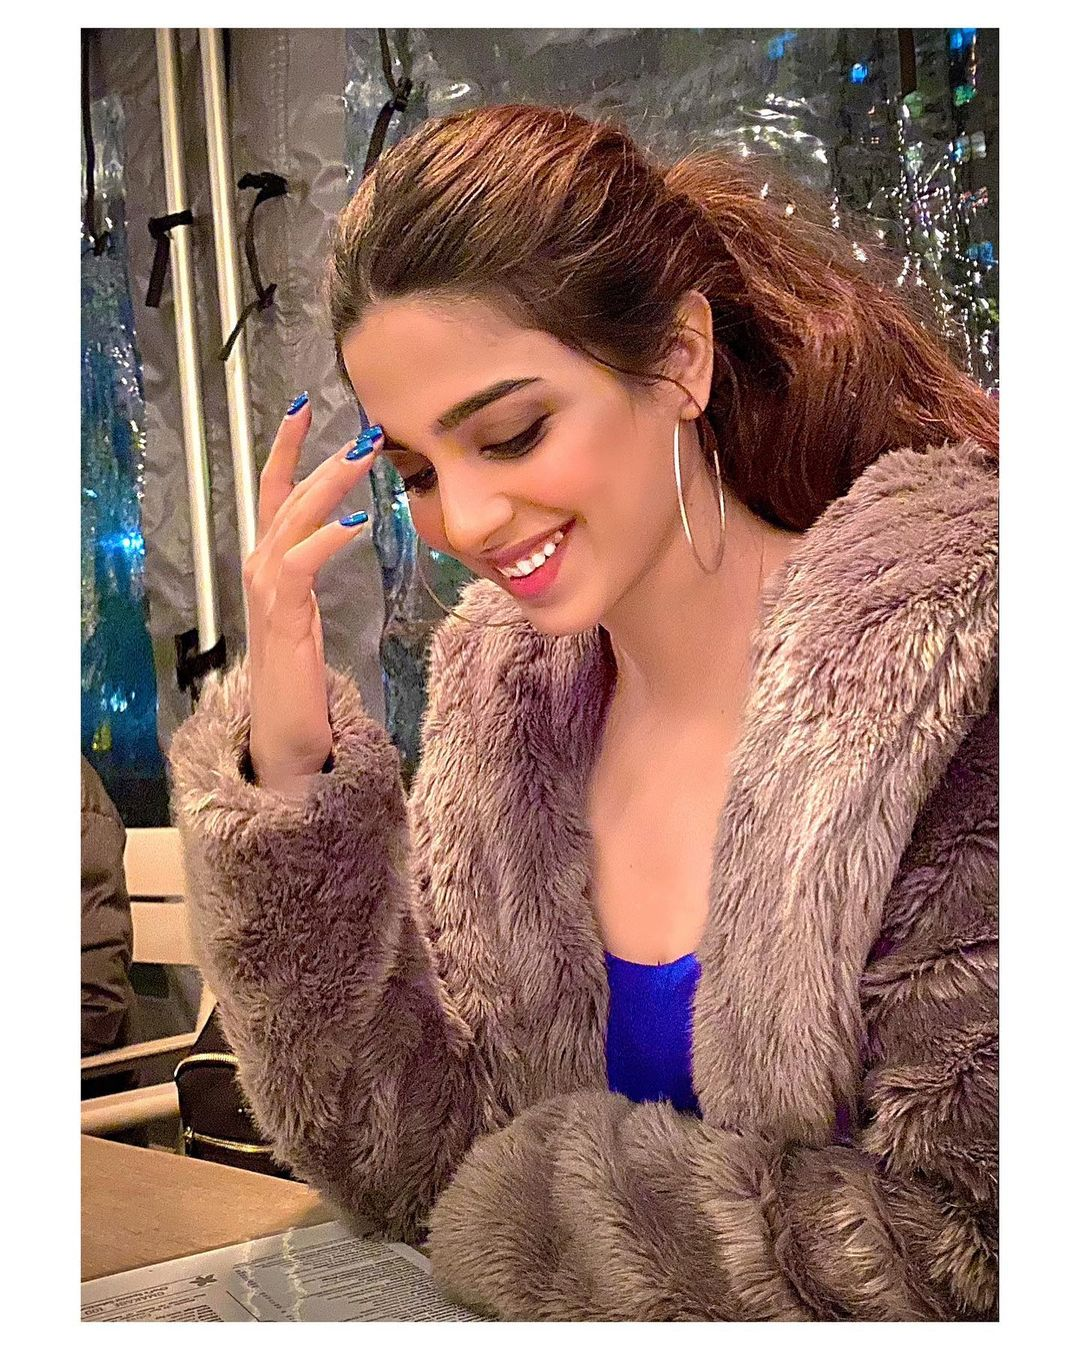 Sonya Hussyn is Looking Gorgeous in Her Latest Pictures from New York